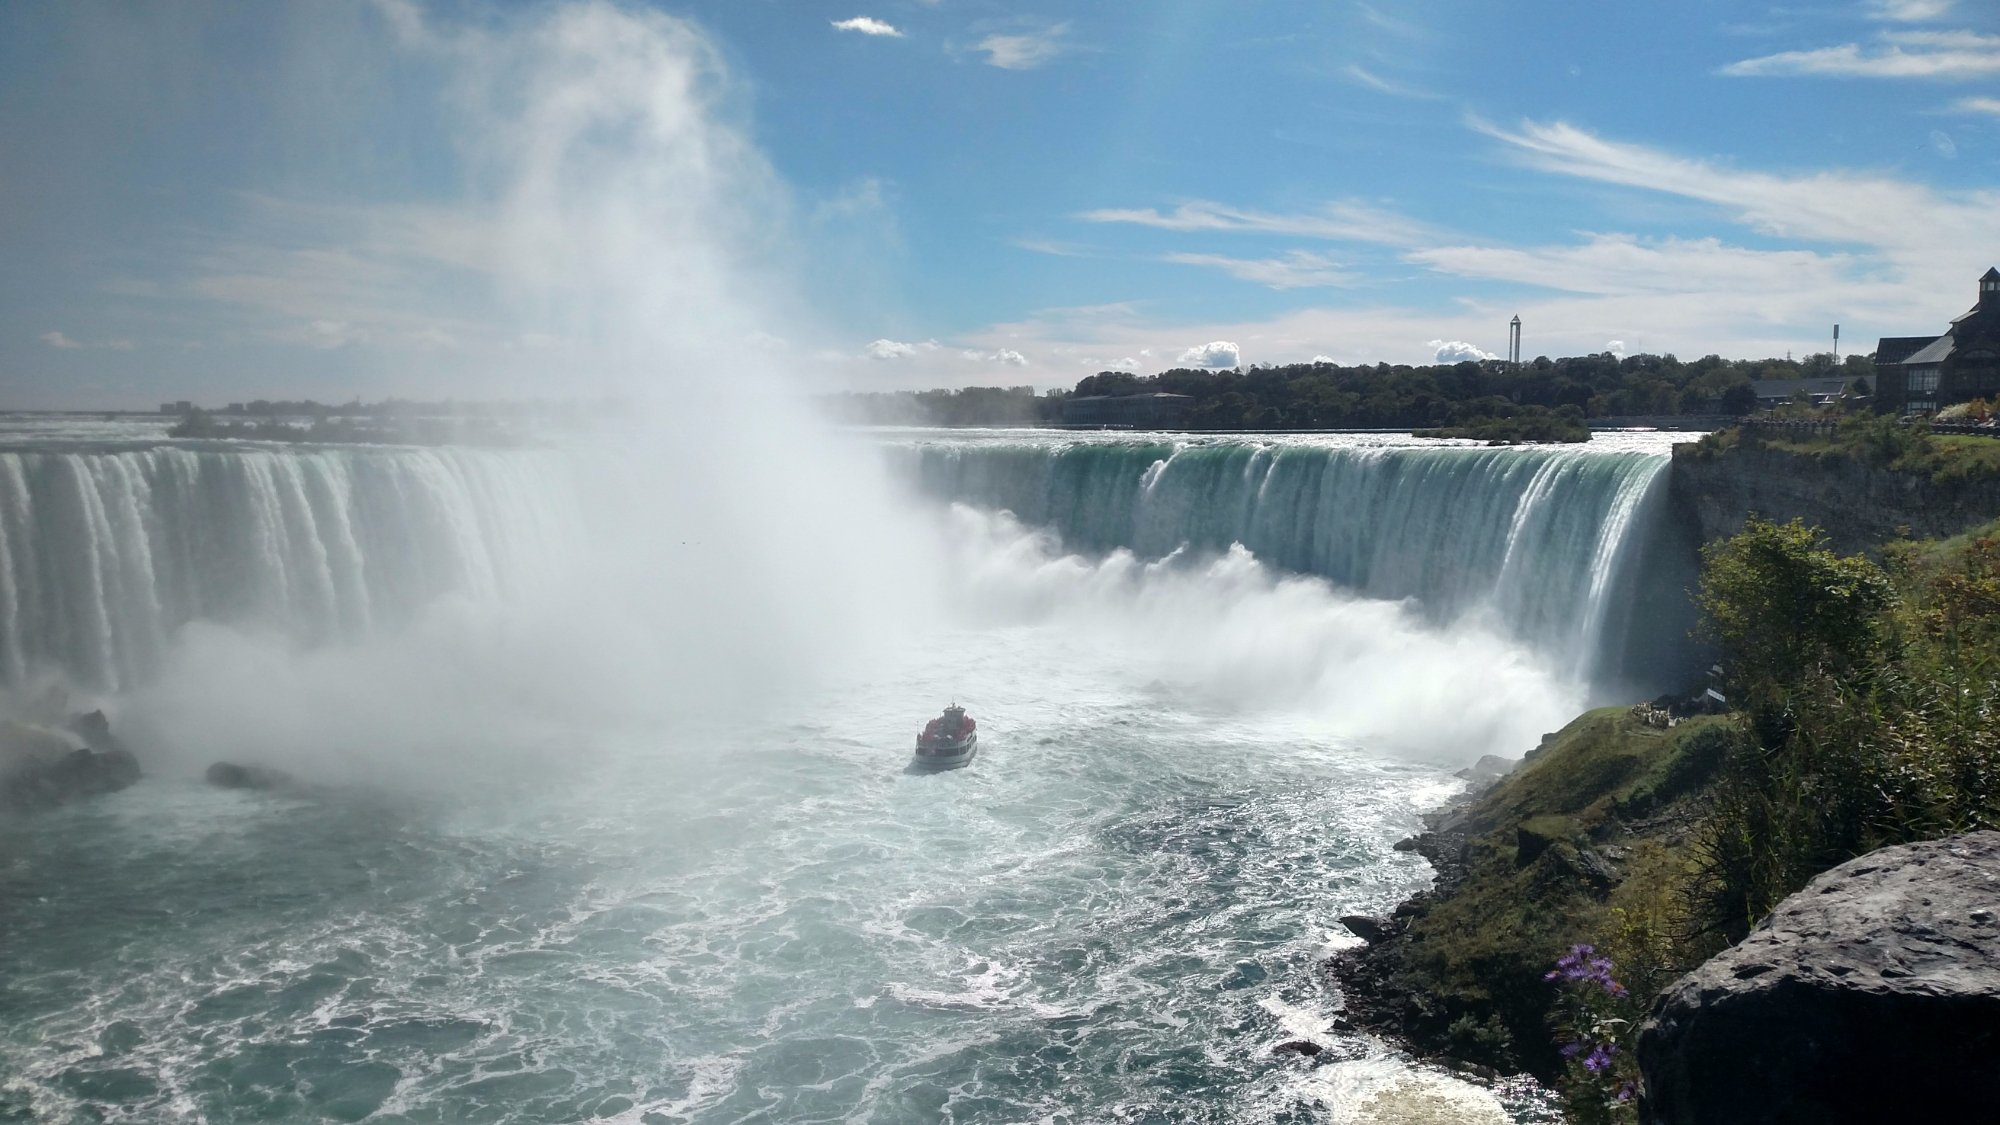 Hornblower Ferry into the mist of Horseshoe Falls